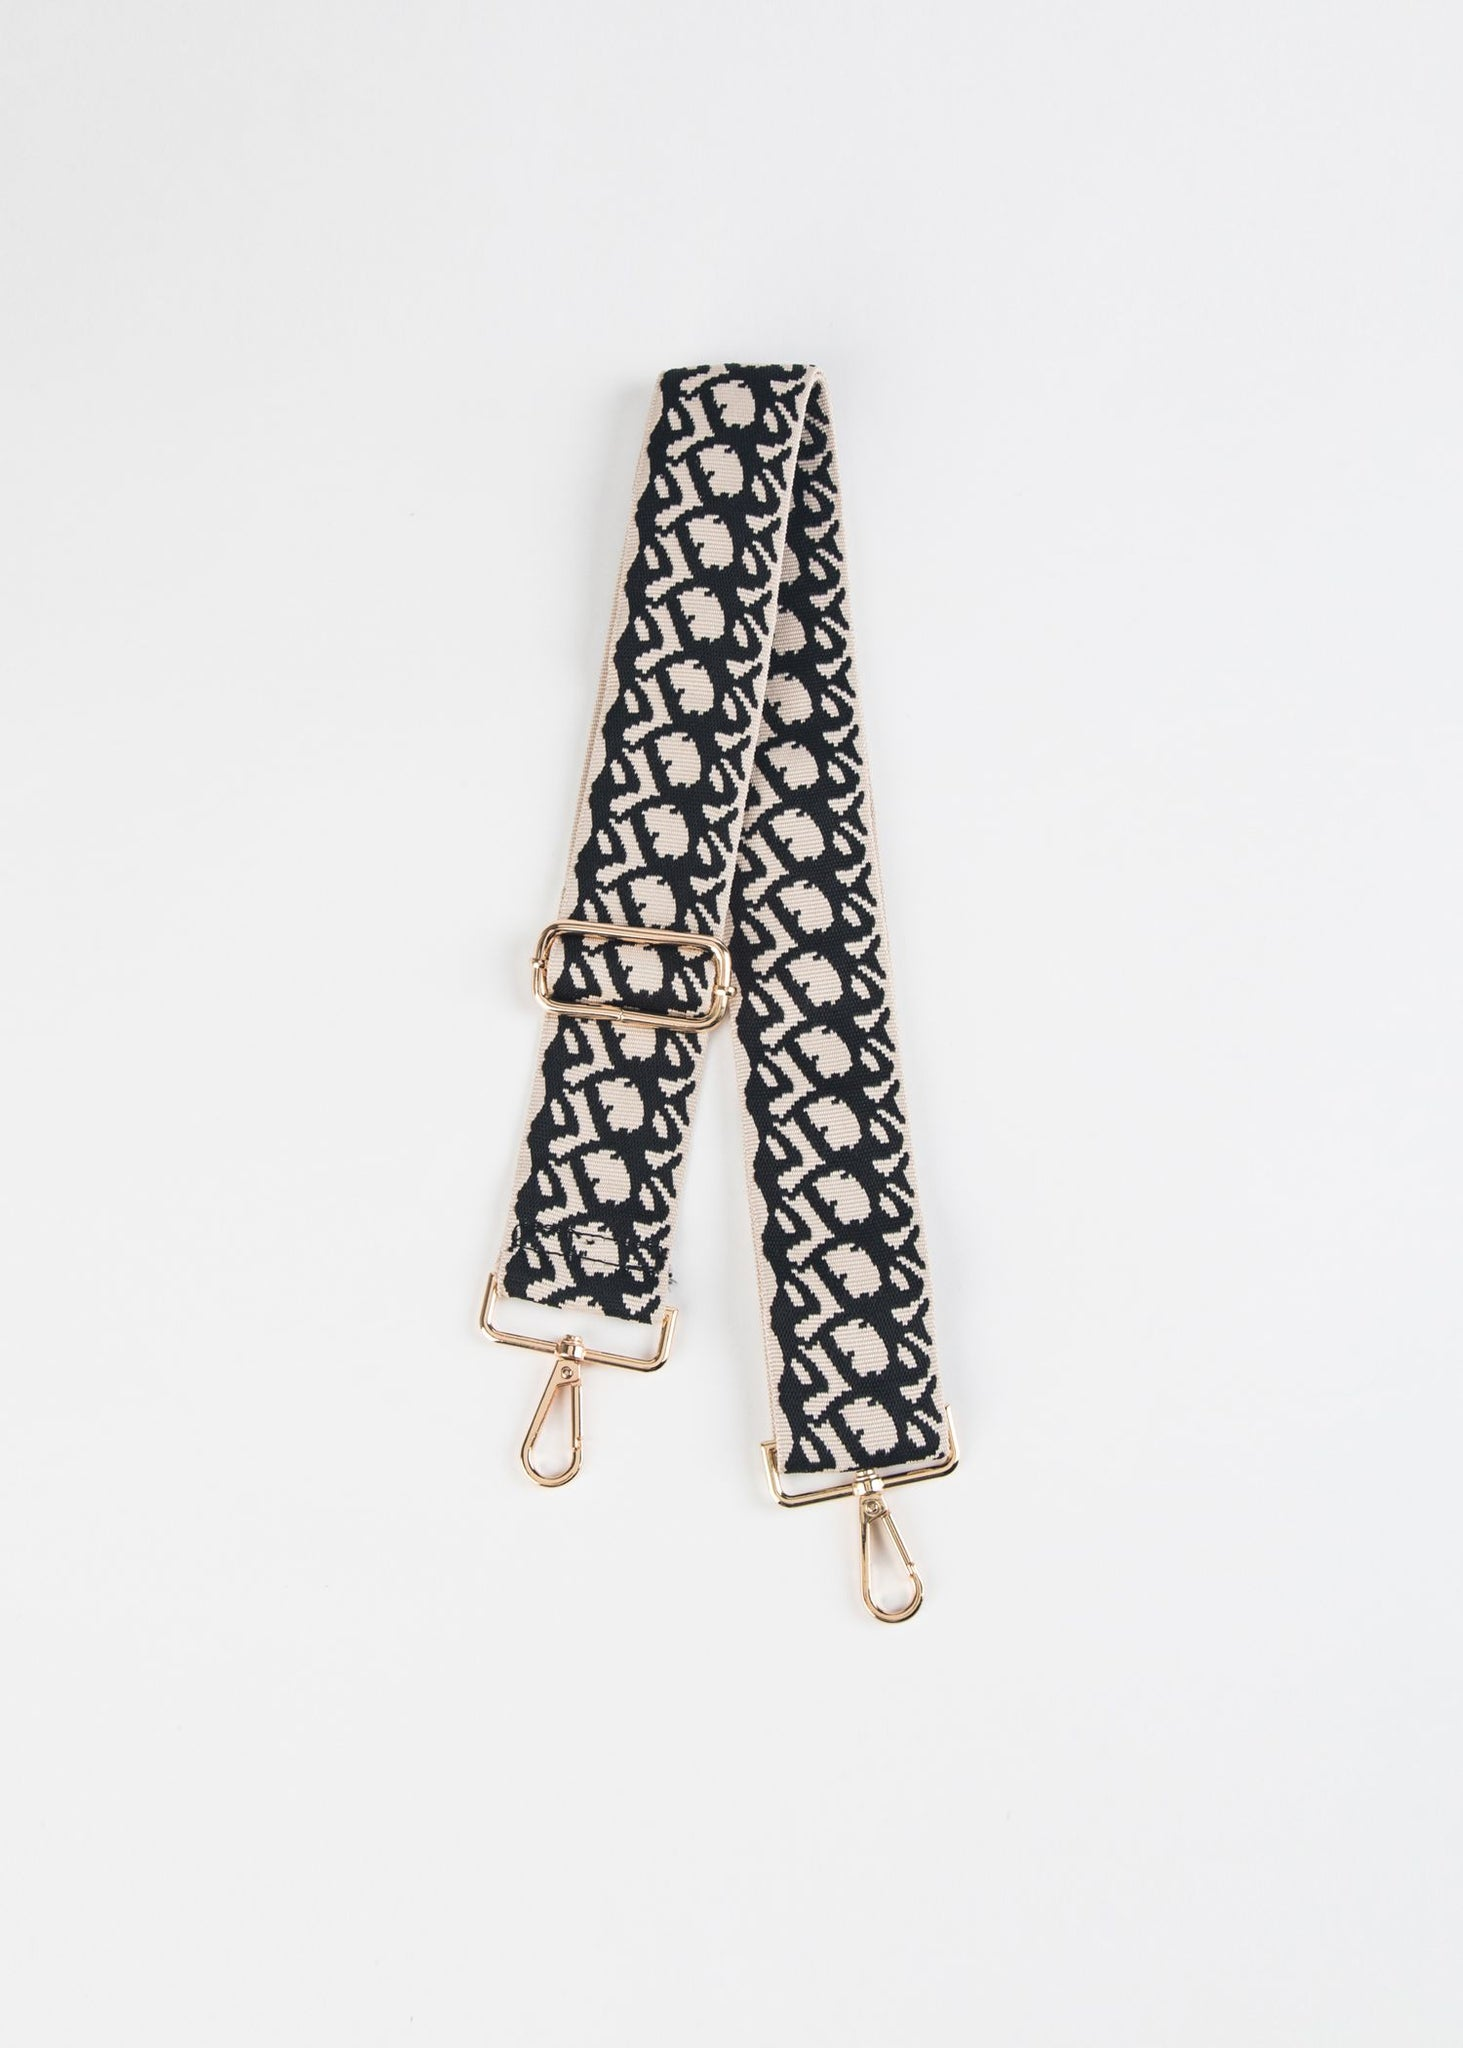 COTTON PRINT ADJUSTABLE HANDBAG STRAP